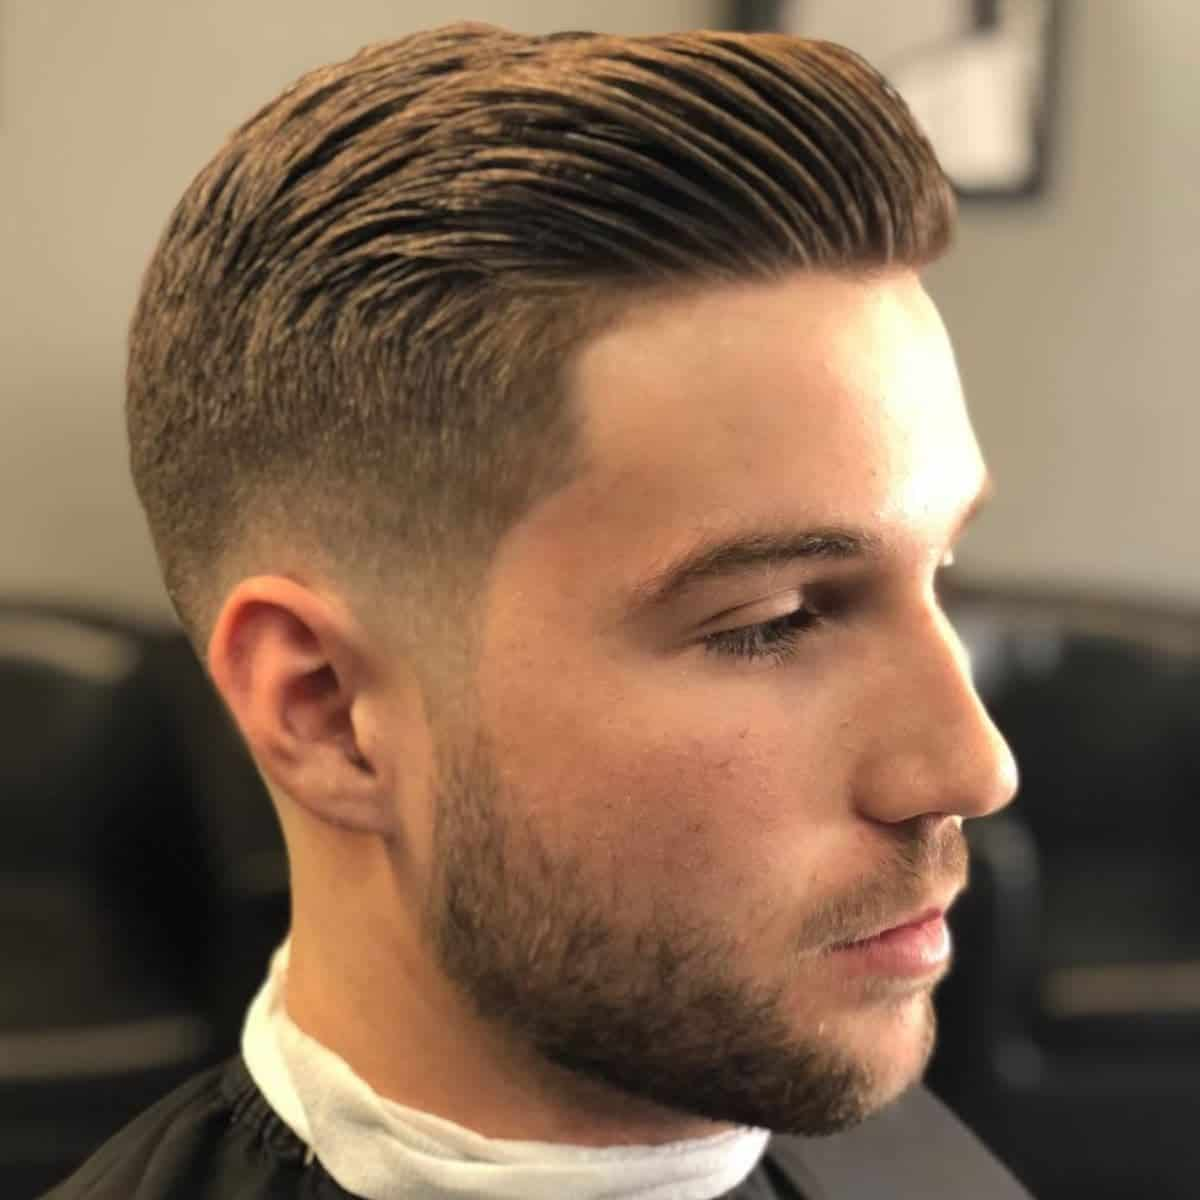 Person with a low fade haircut.